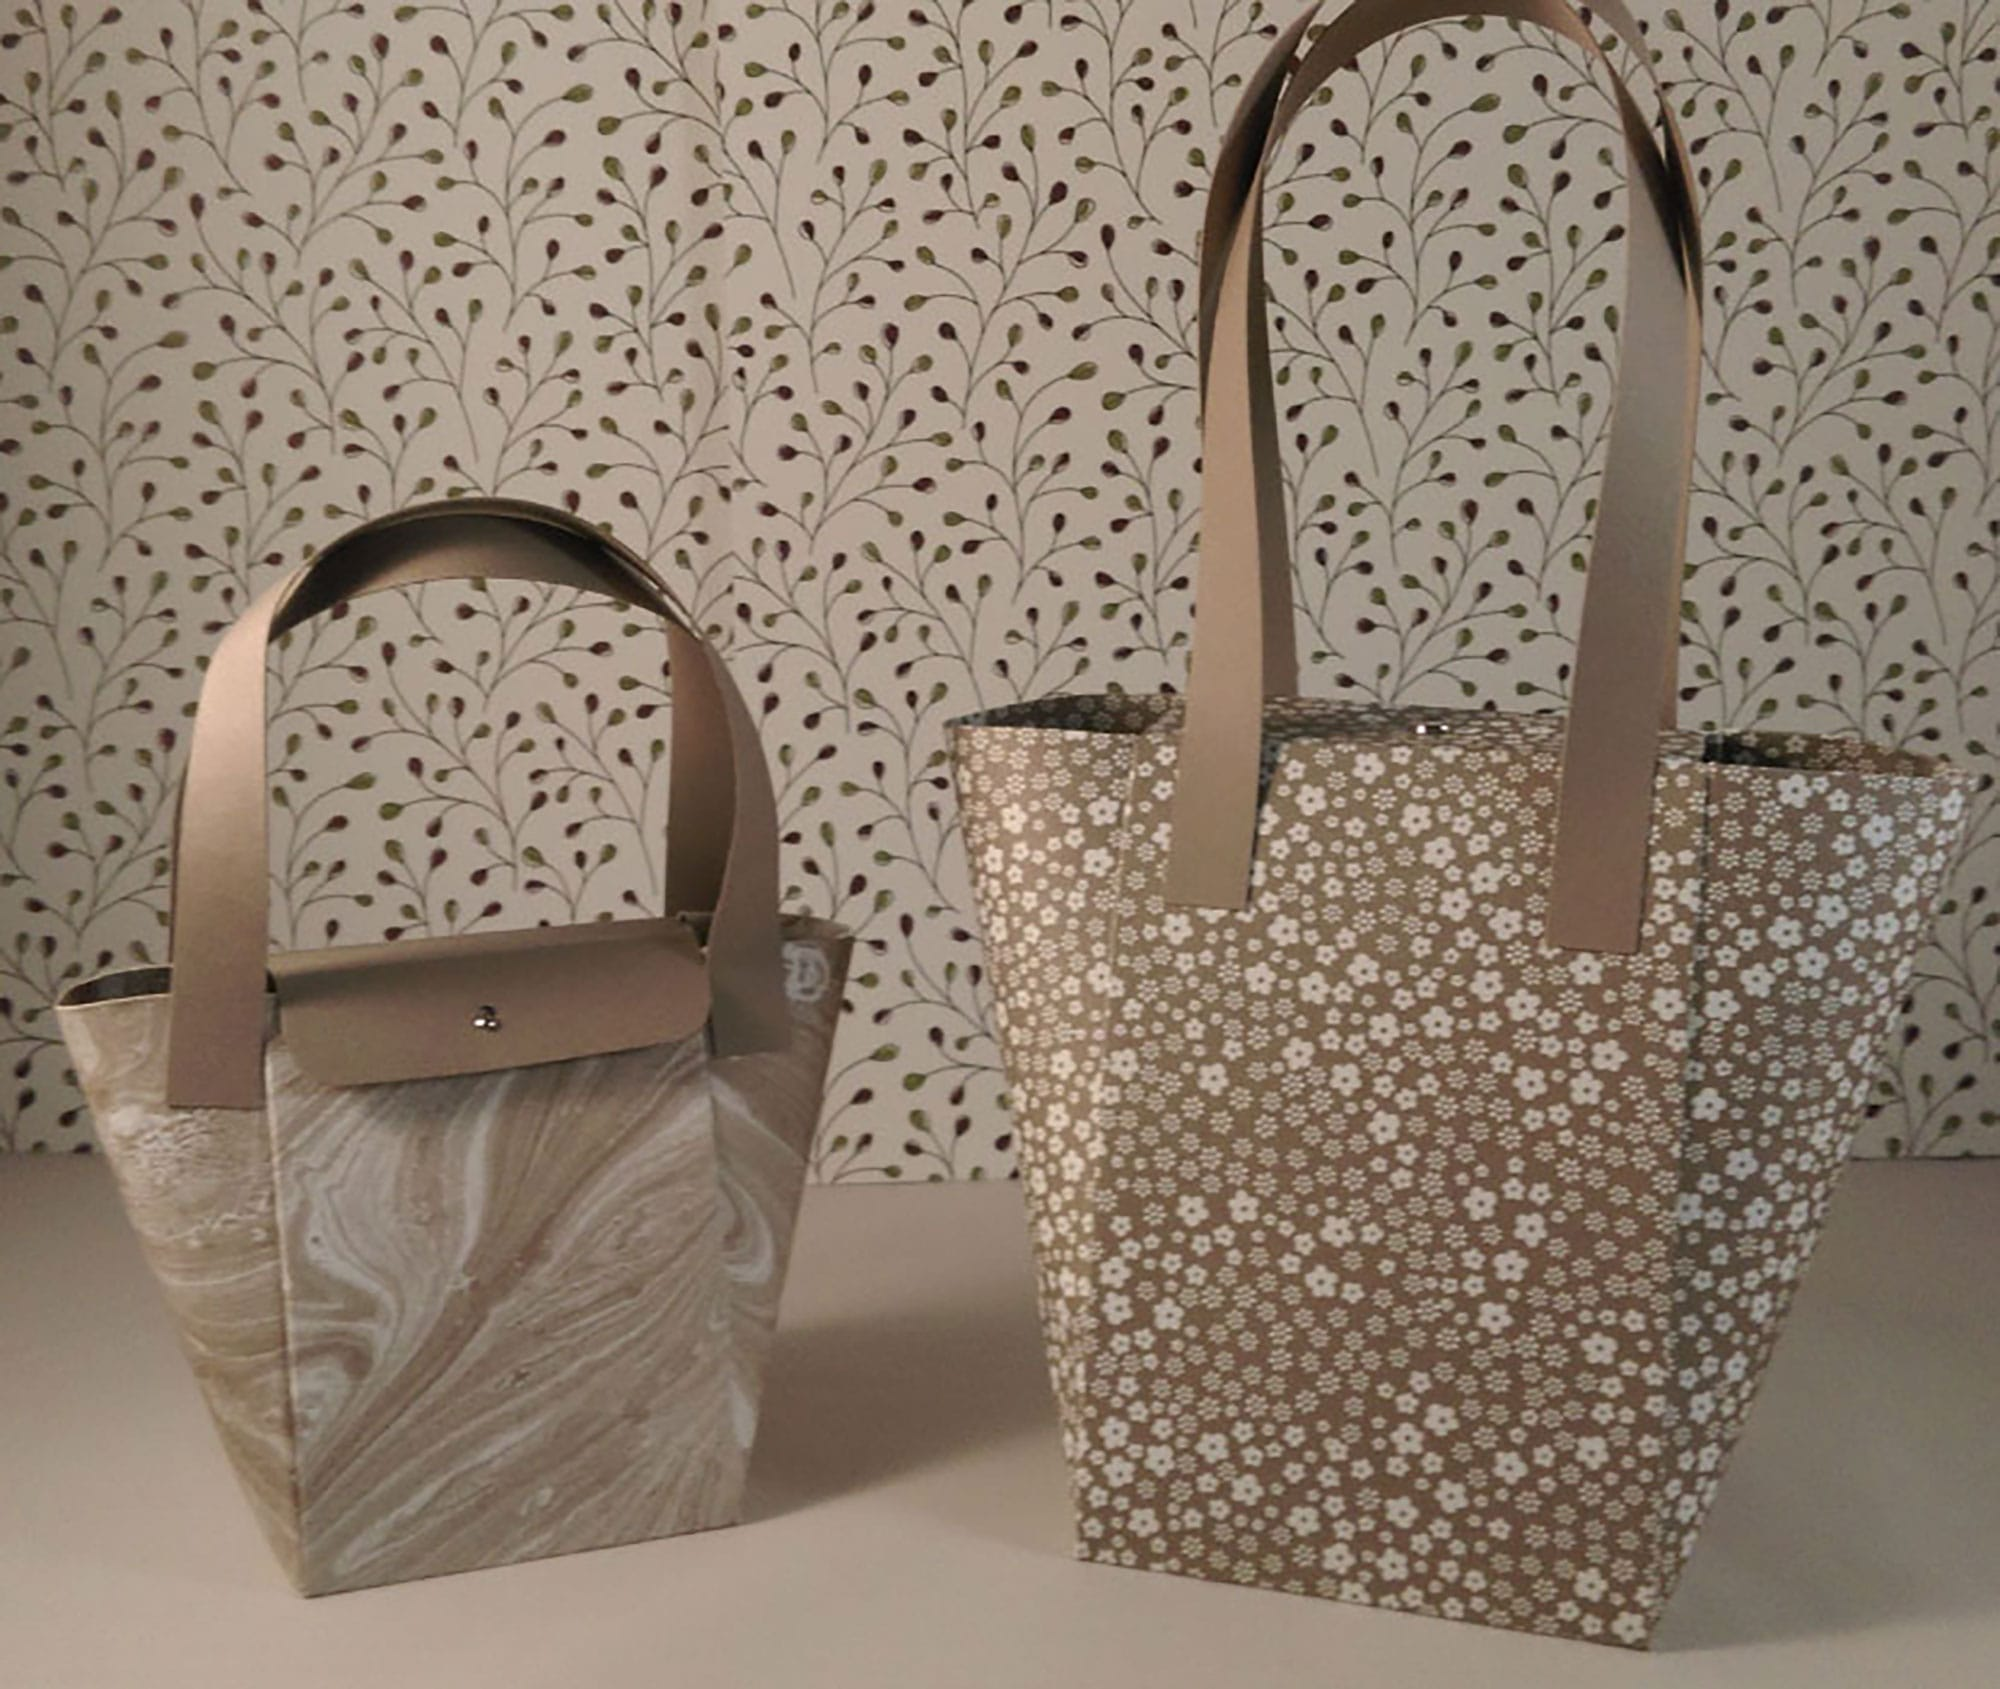 die-papiertante-grosse-strandtasche-shopper